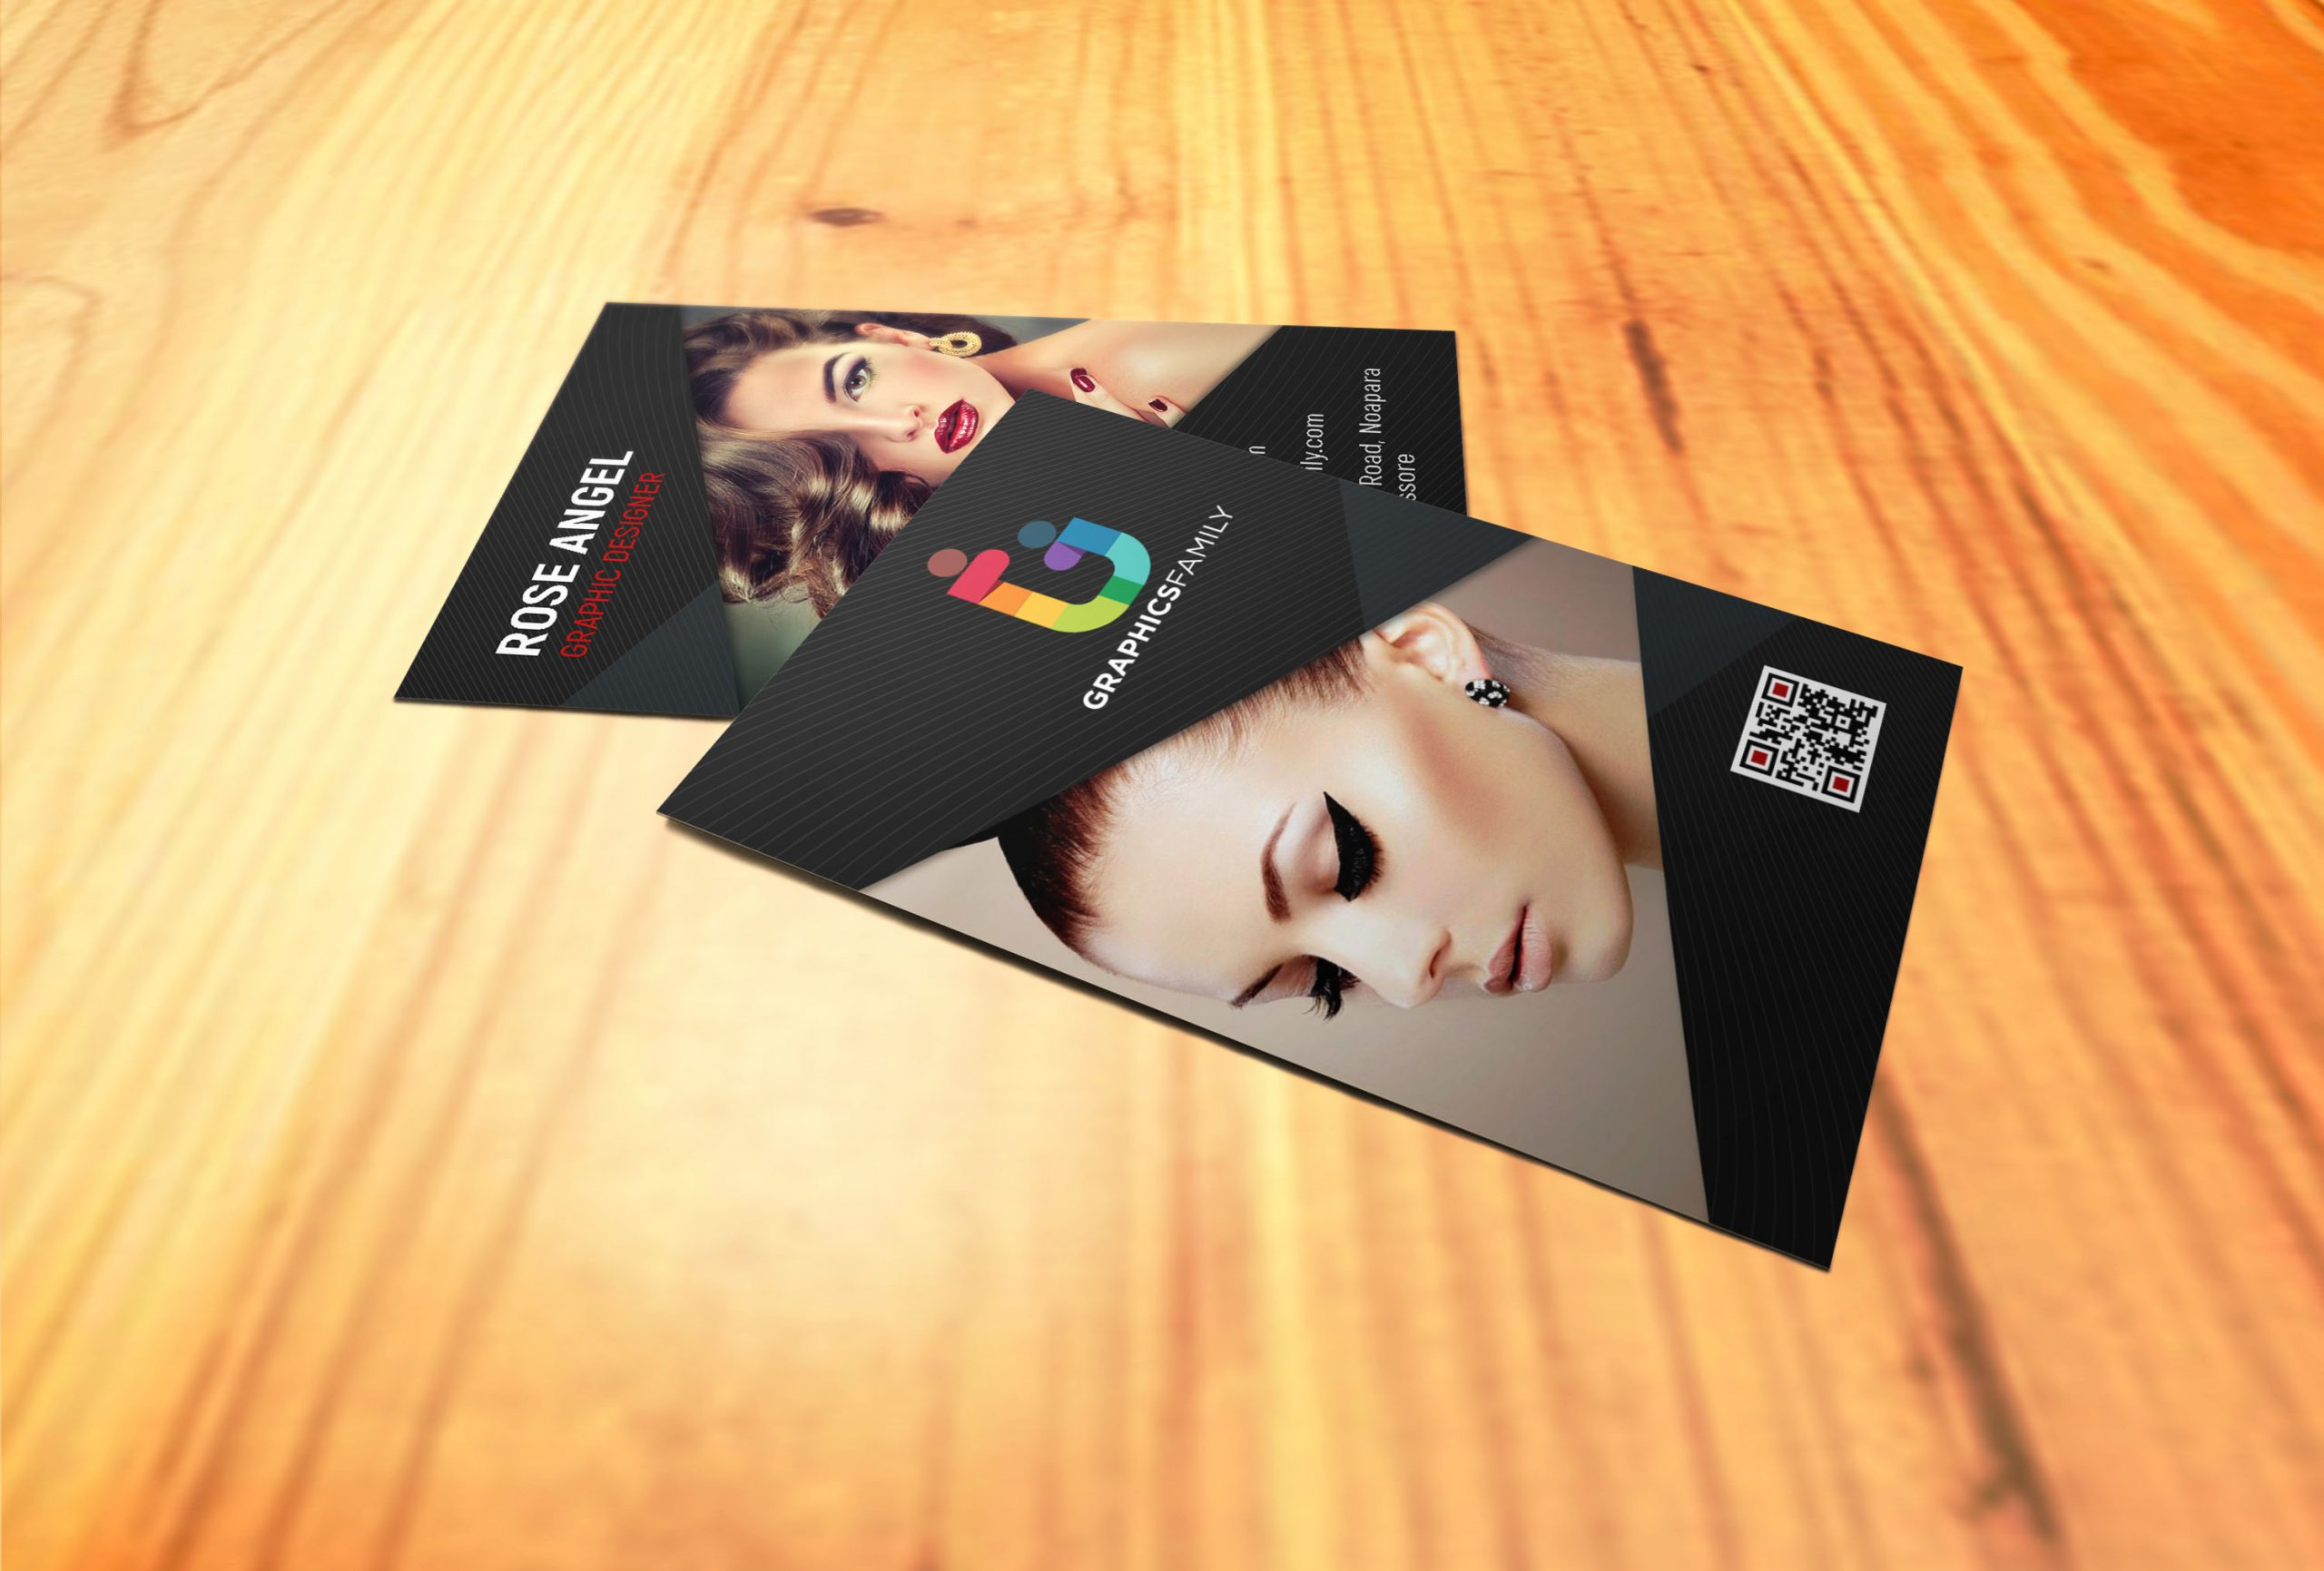 Beauty and Fashion Vertical Business Card Design